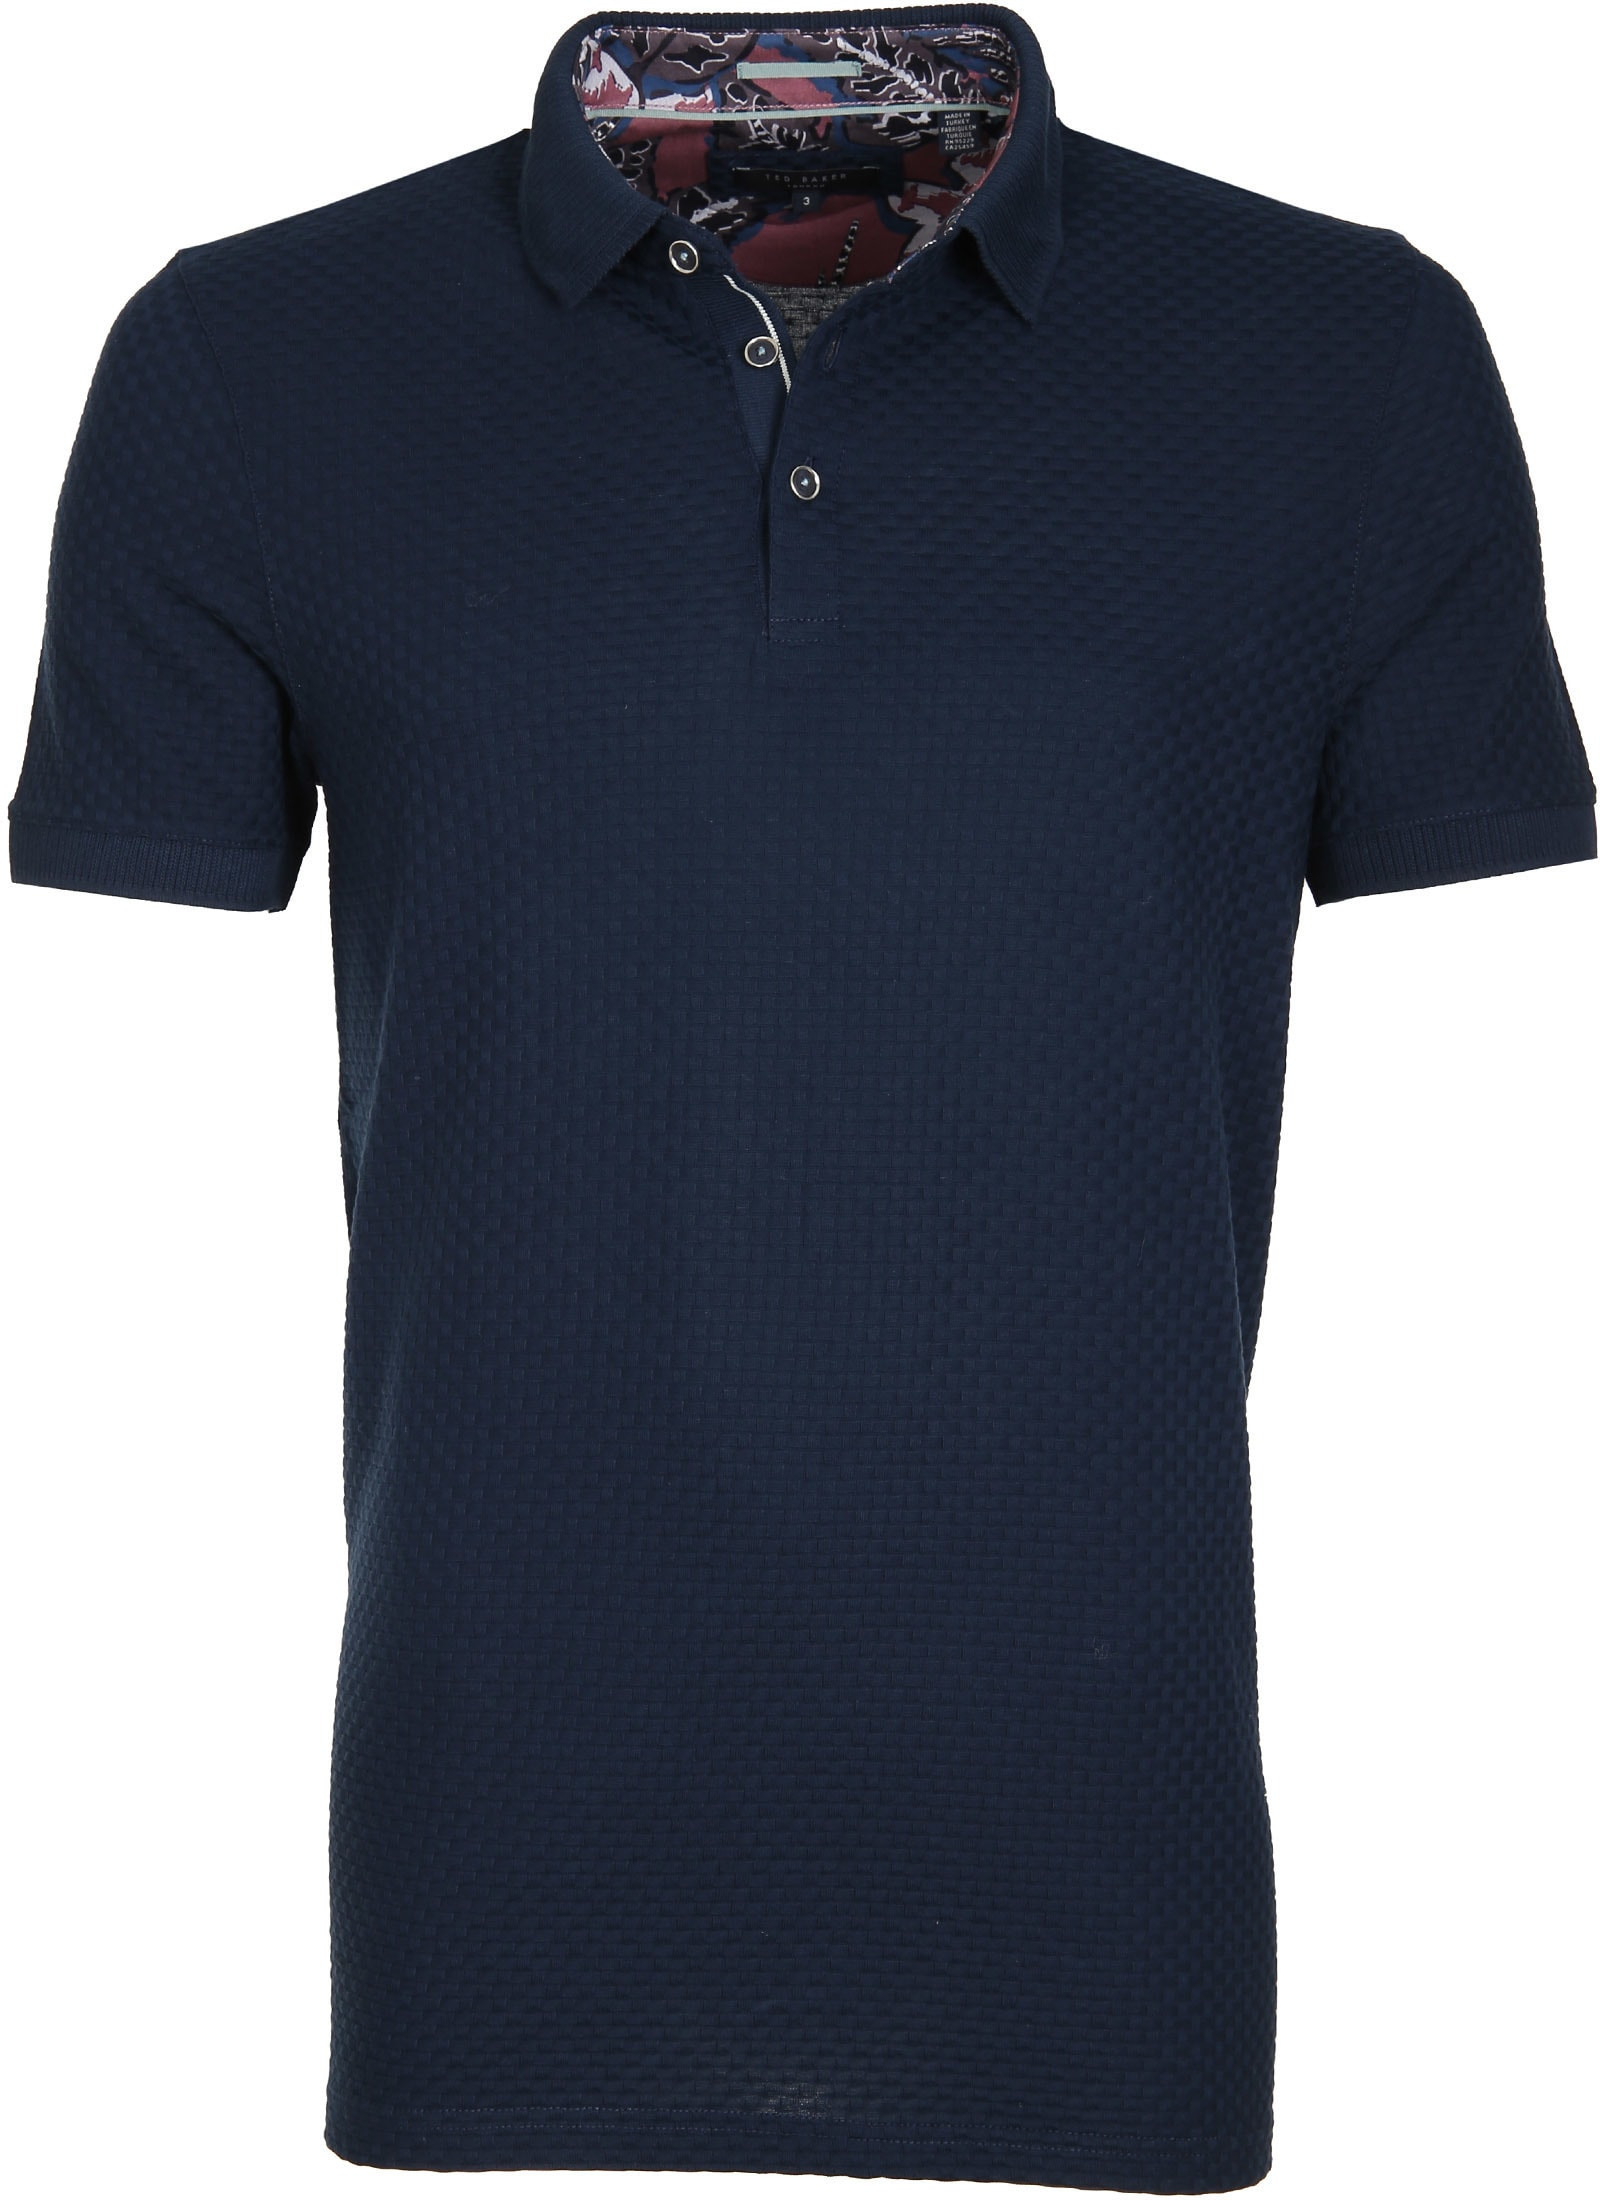 Ted Baker Poloshirt Knit Navy foto 0